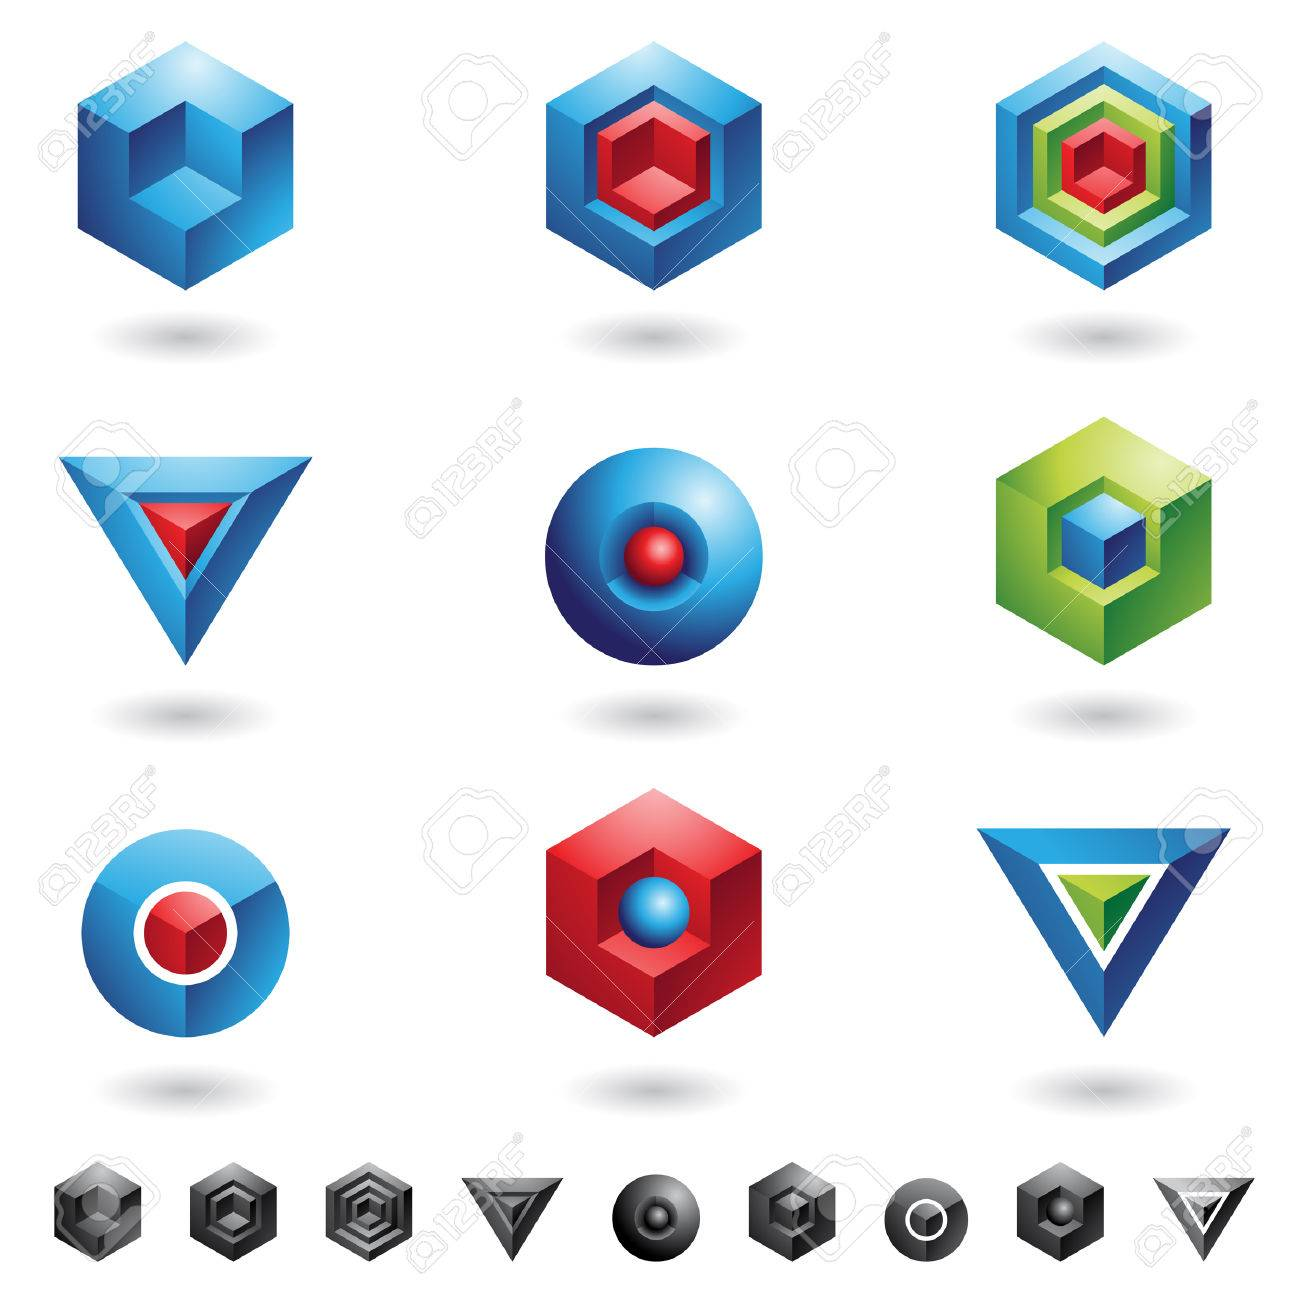 Spheres, Cubes, triangles and three dimensional shapes Stock Vector - 4061713